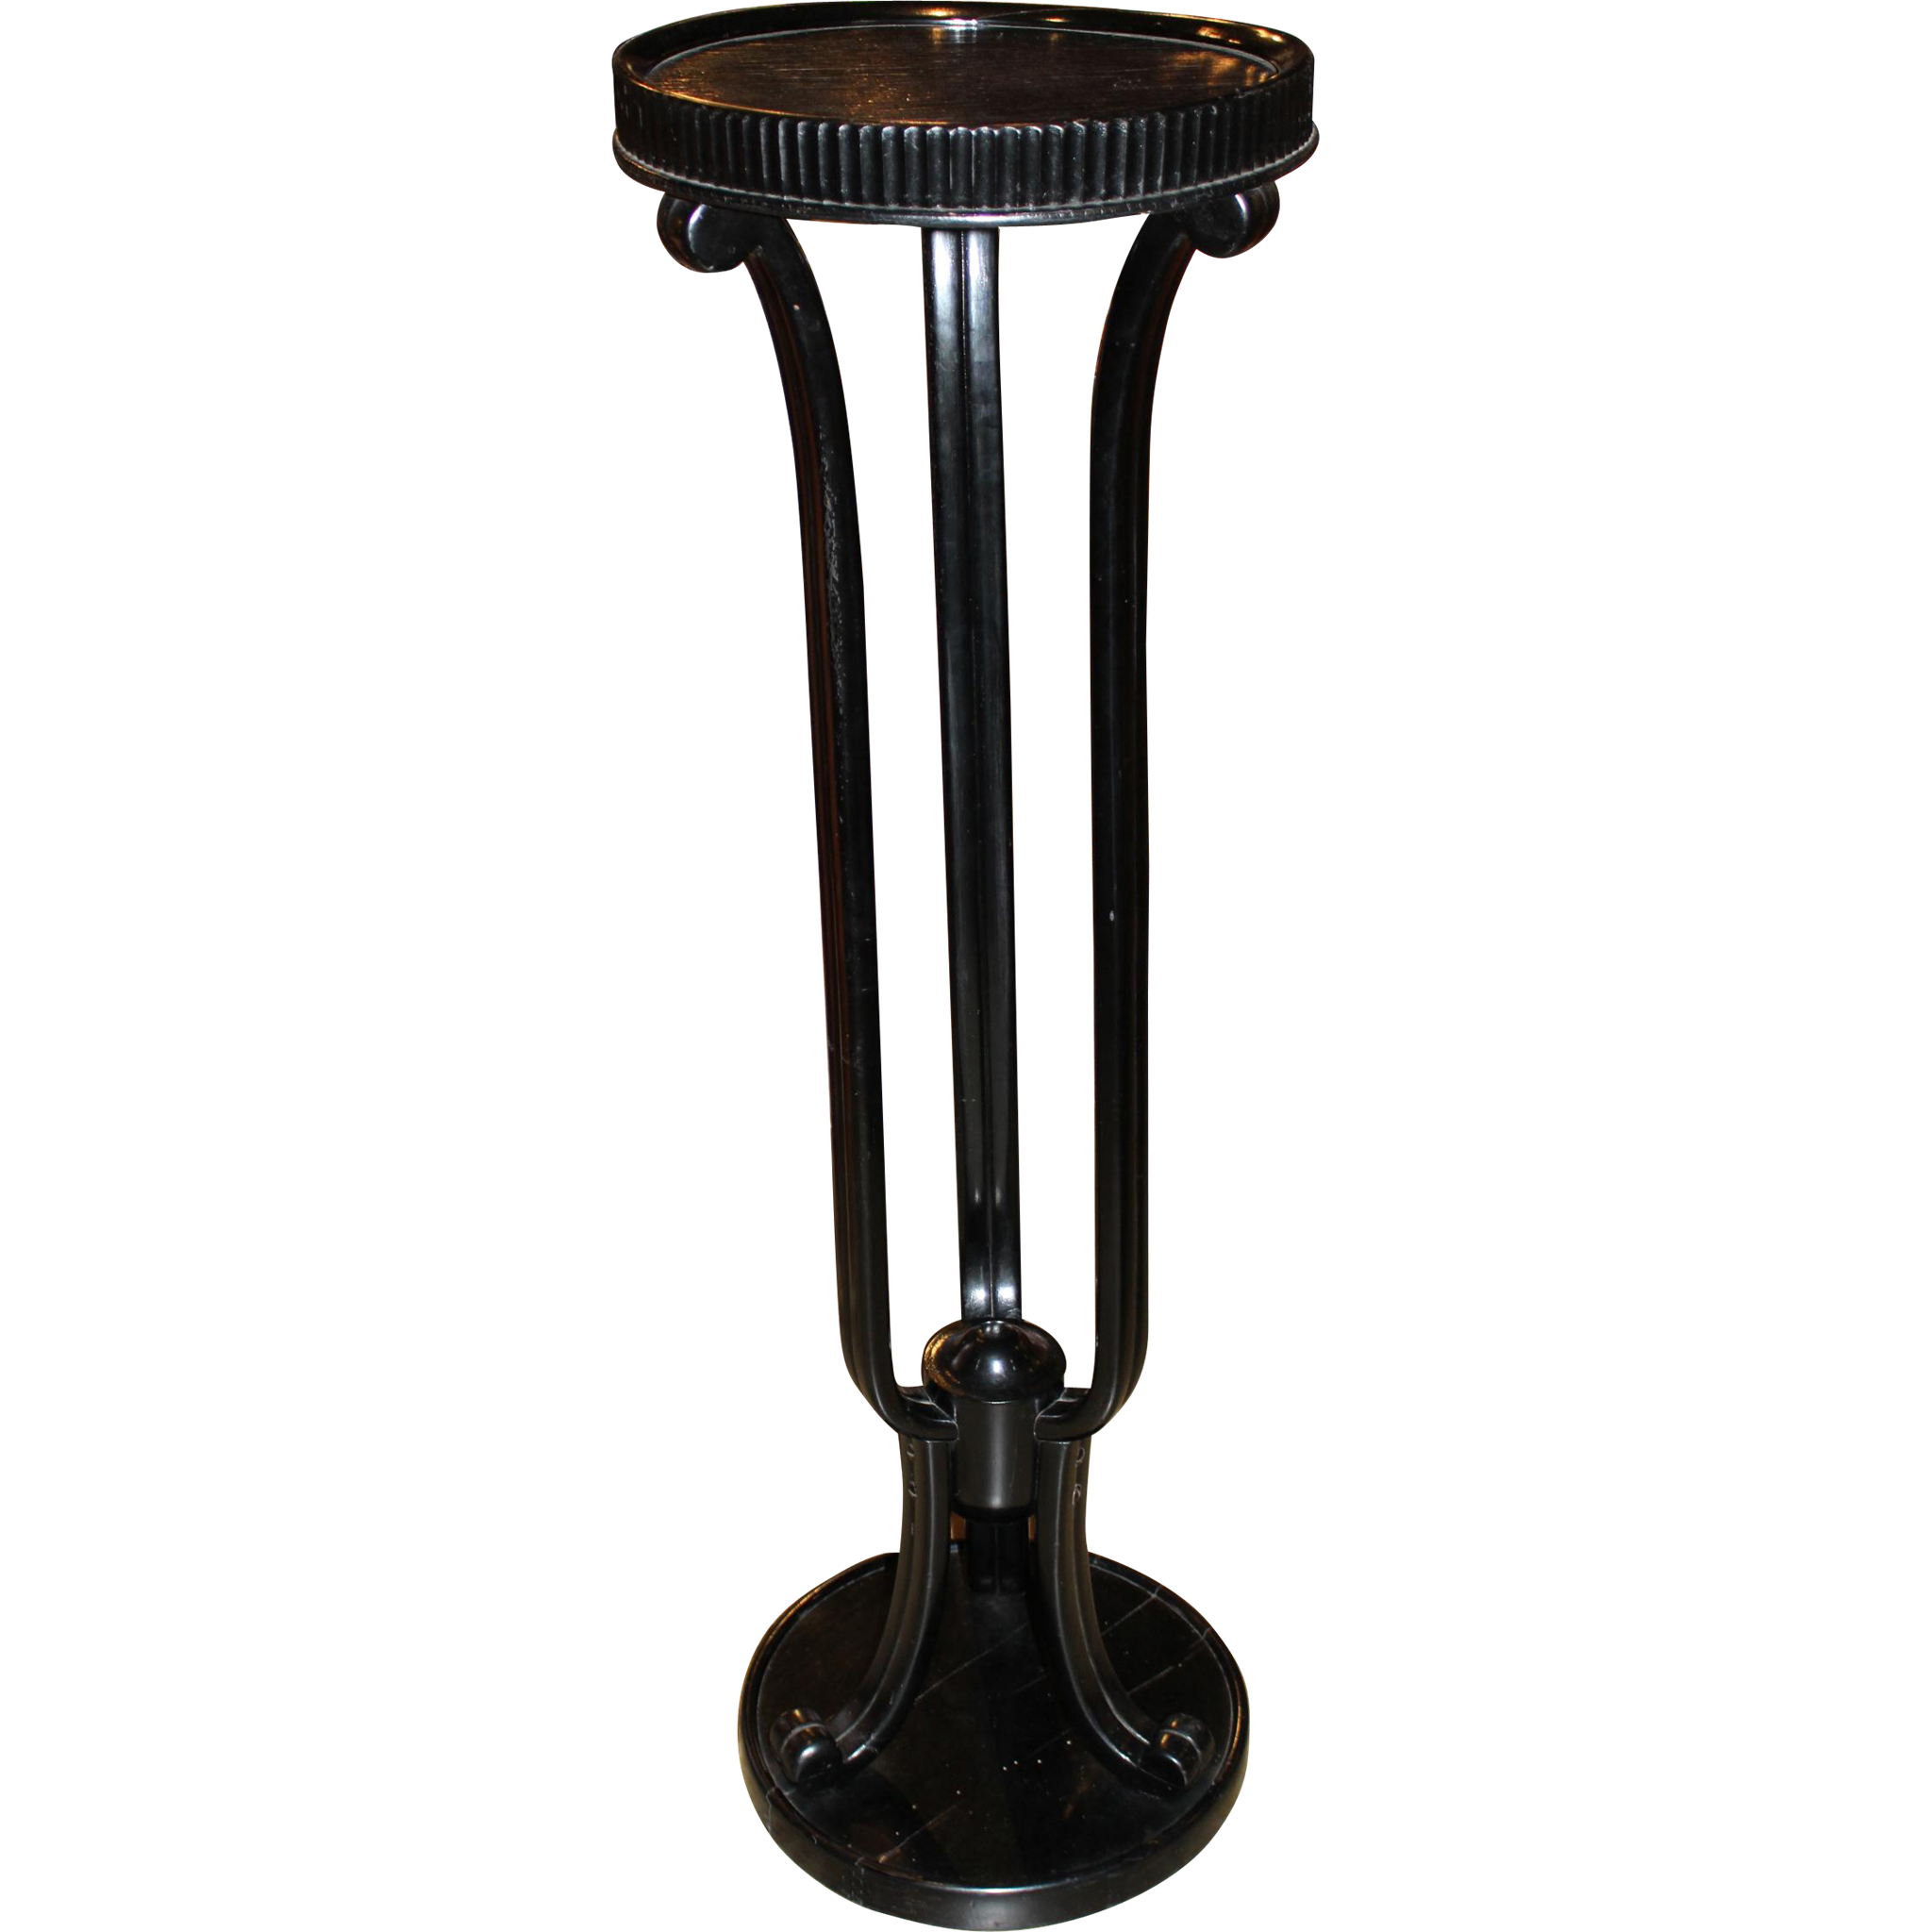 Ebonized Wooden Pedestal Designed by Otto Prutscher for Thonet